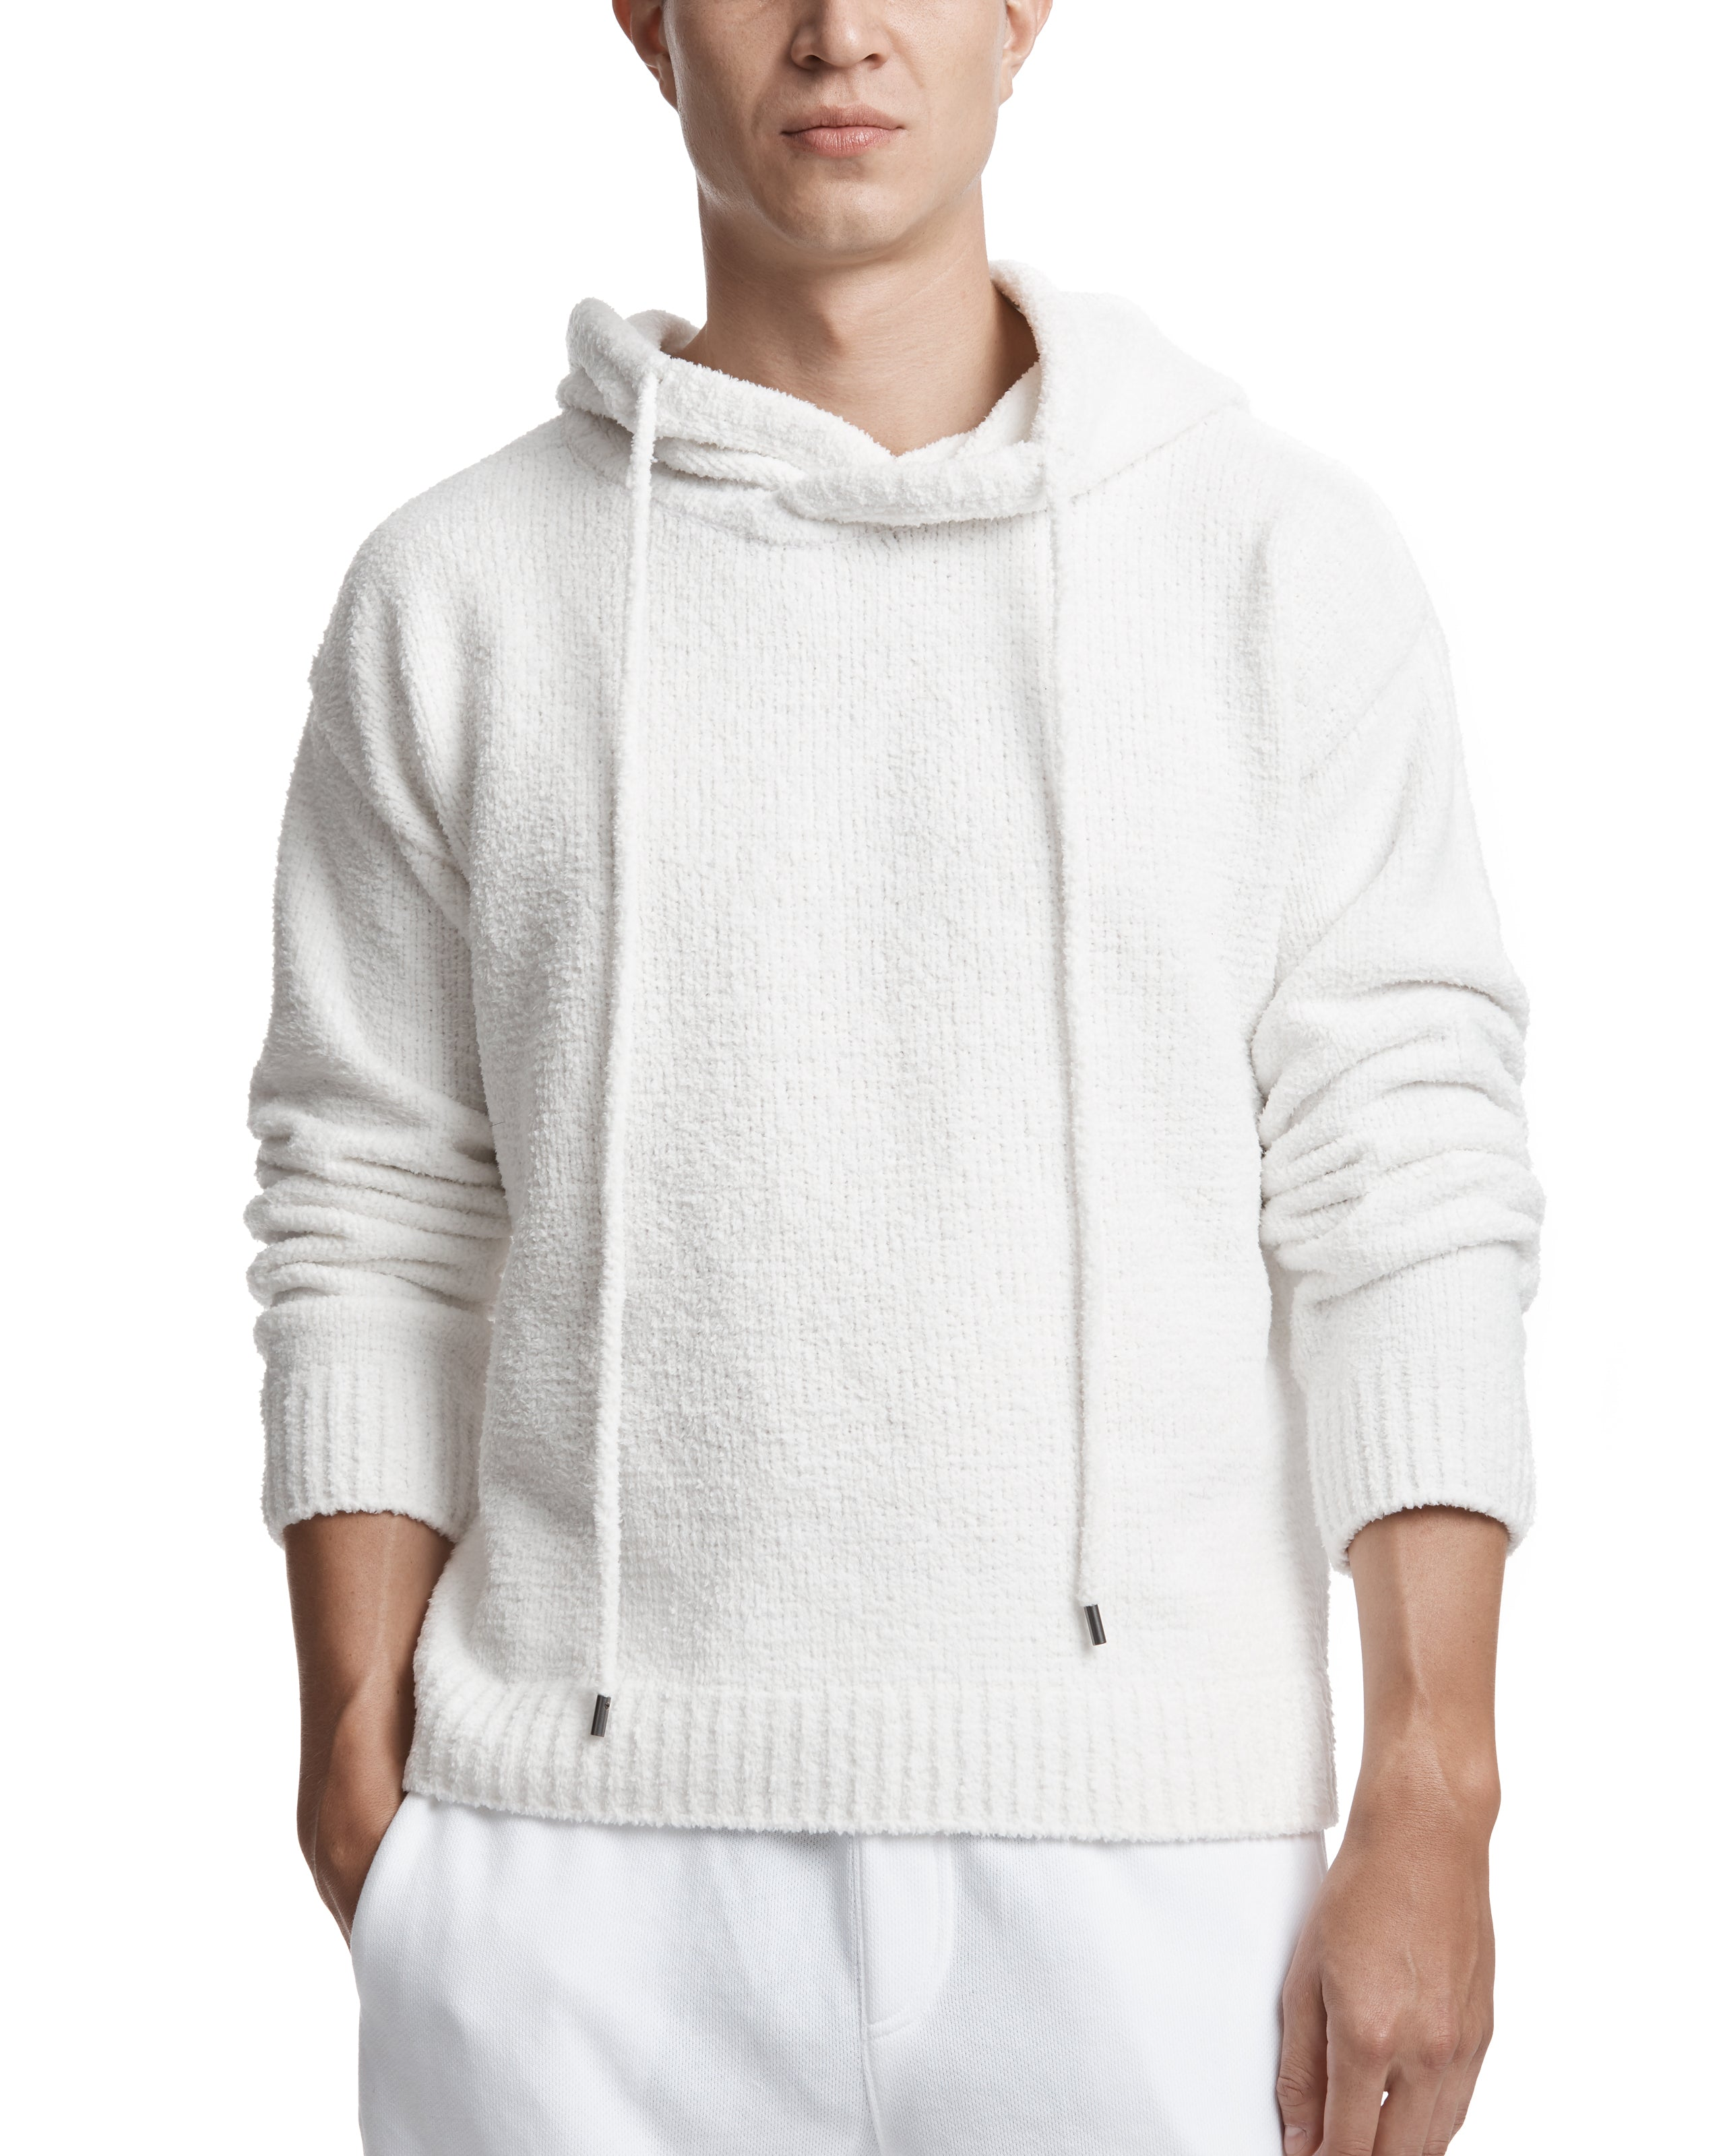 ATM Chenille Hooded Pullover Sweater